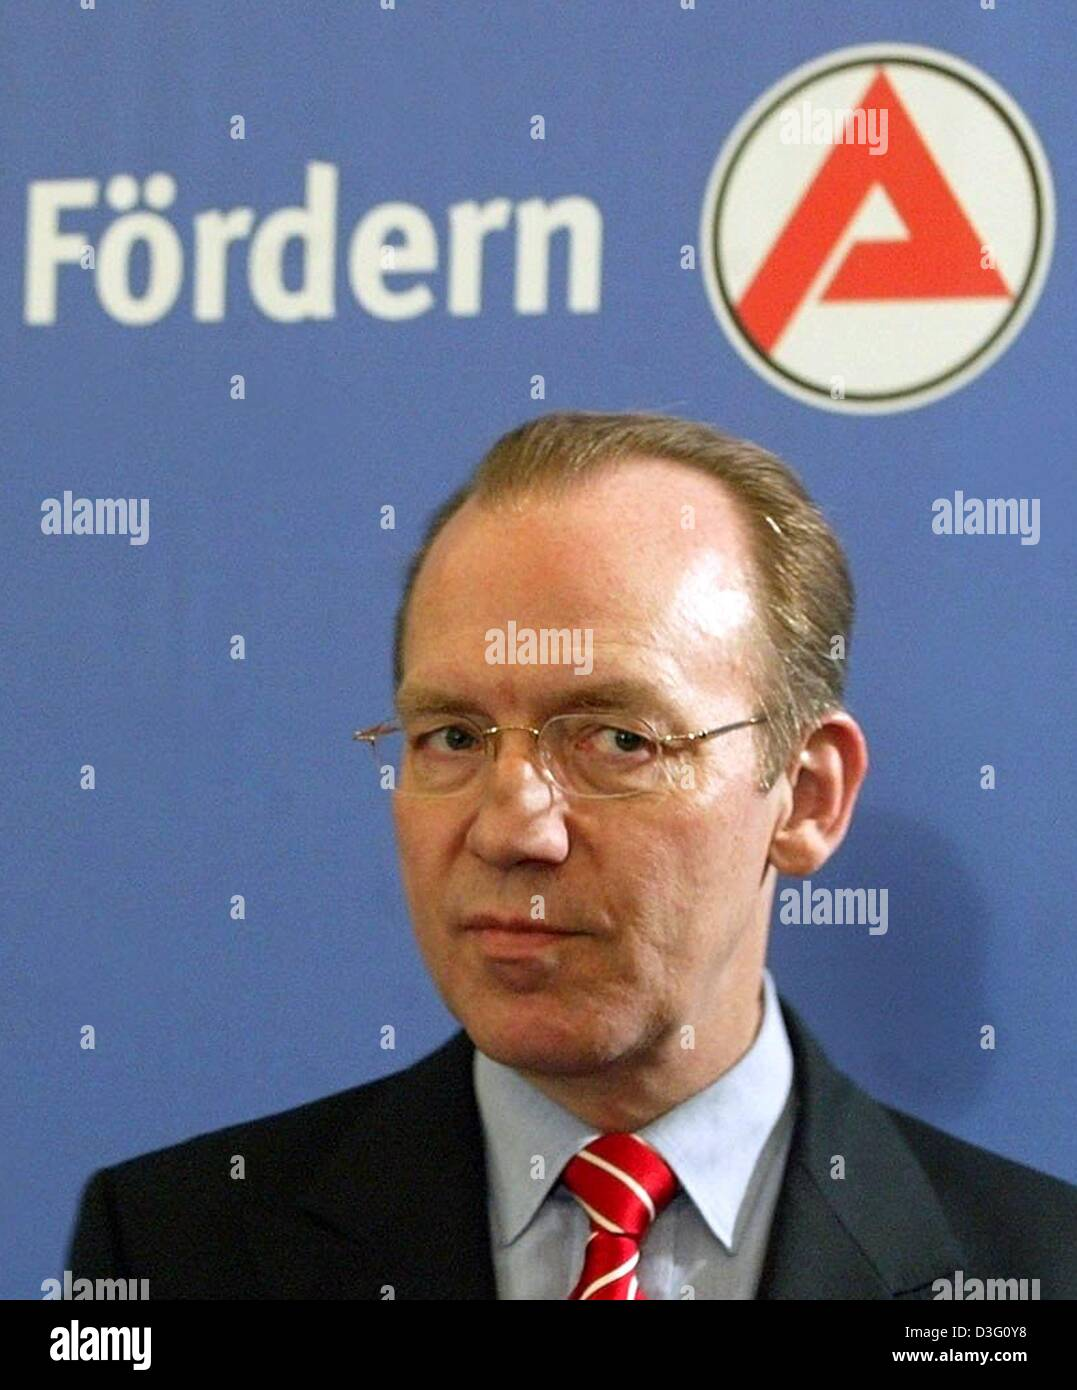 (dpa) - Florian Gerster, head of the German Federal Employment Office, stands in front of the logo of the Federal - Stock Image